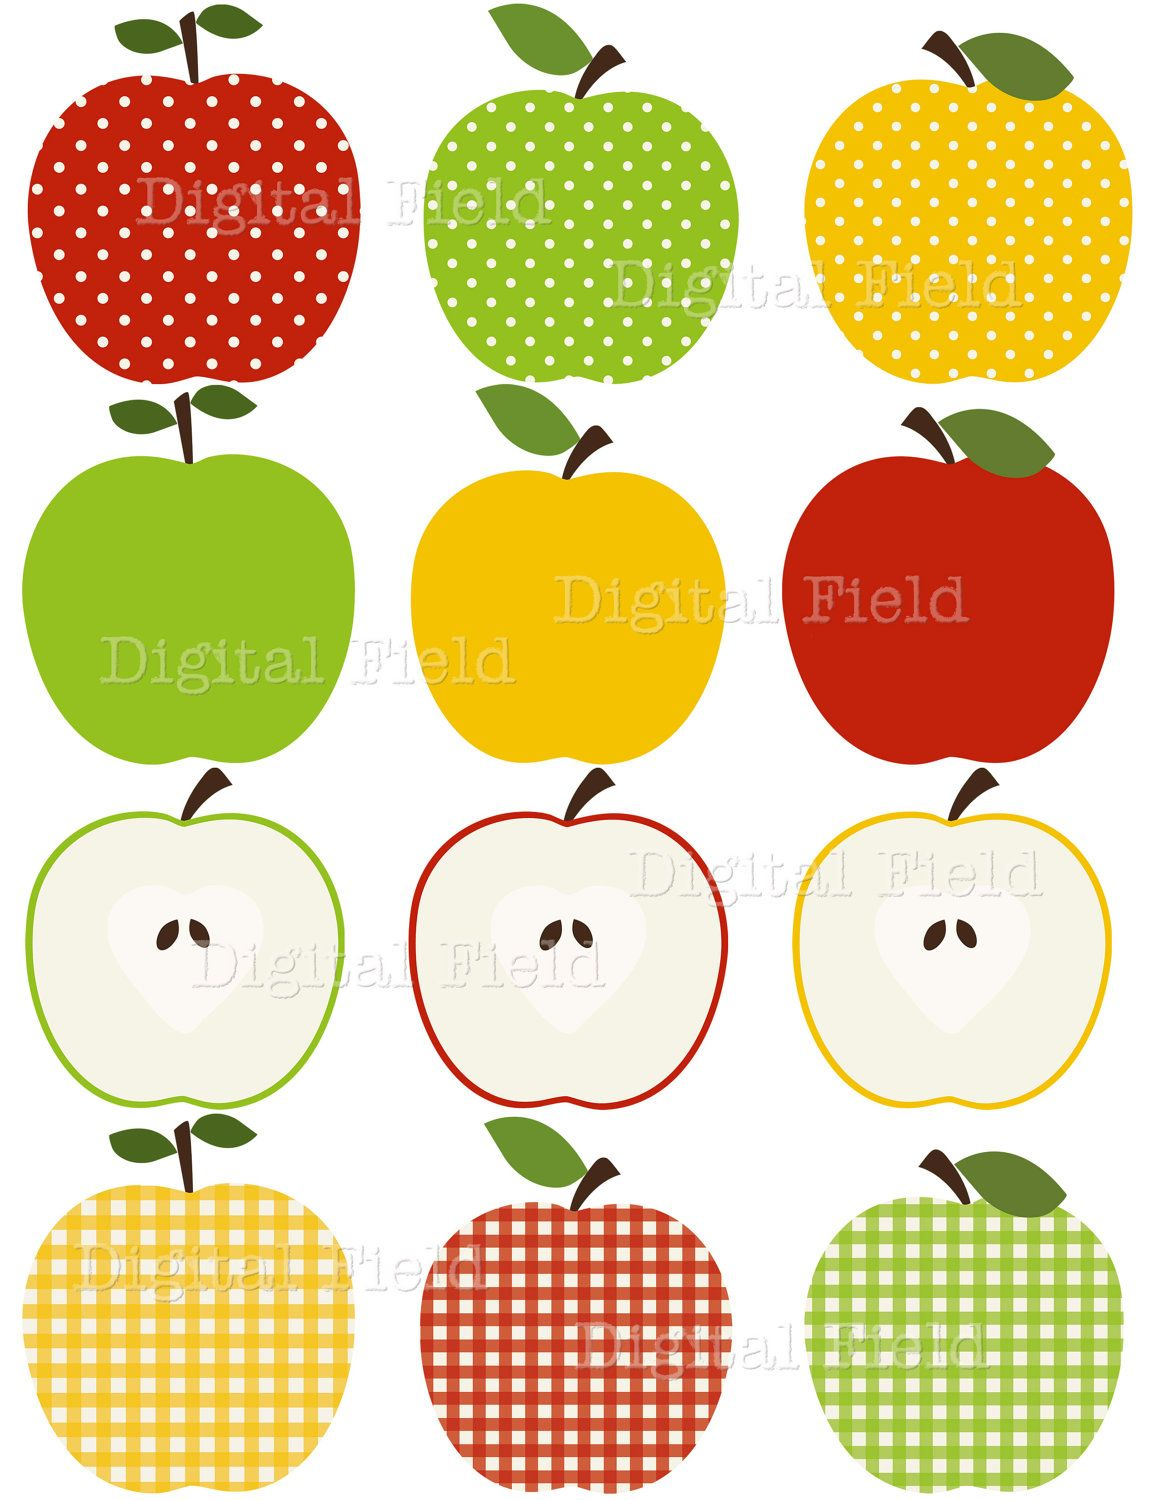 hight resolution of apple clip art set red green and yellow patterned digital clipart personal and small commercial use 2 50 via etsy